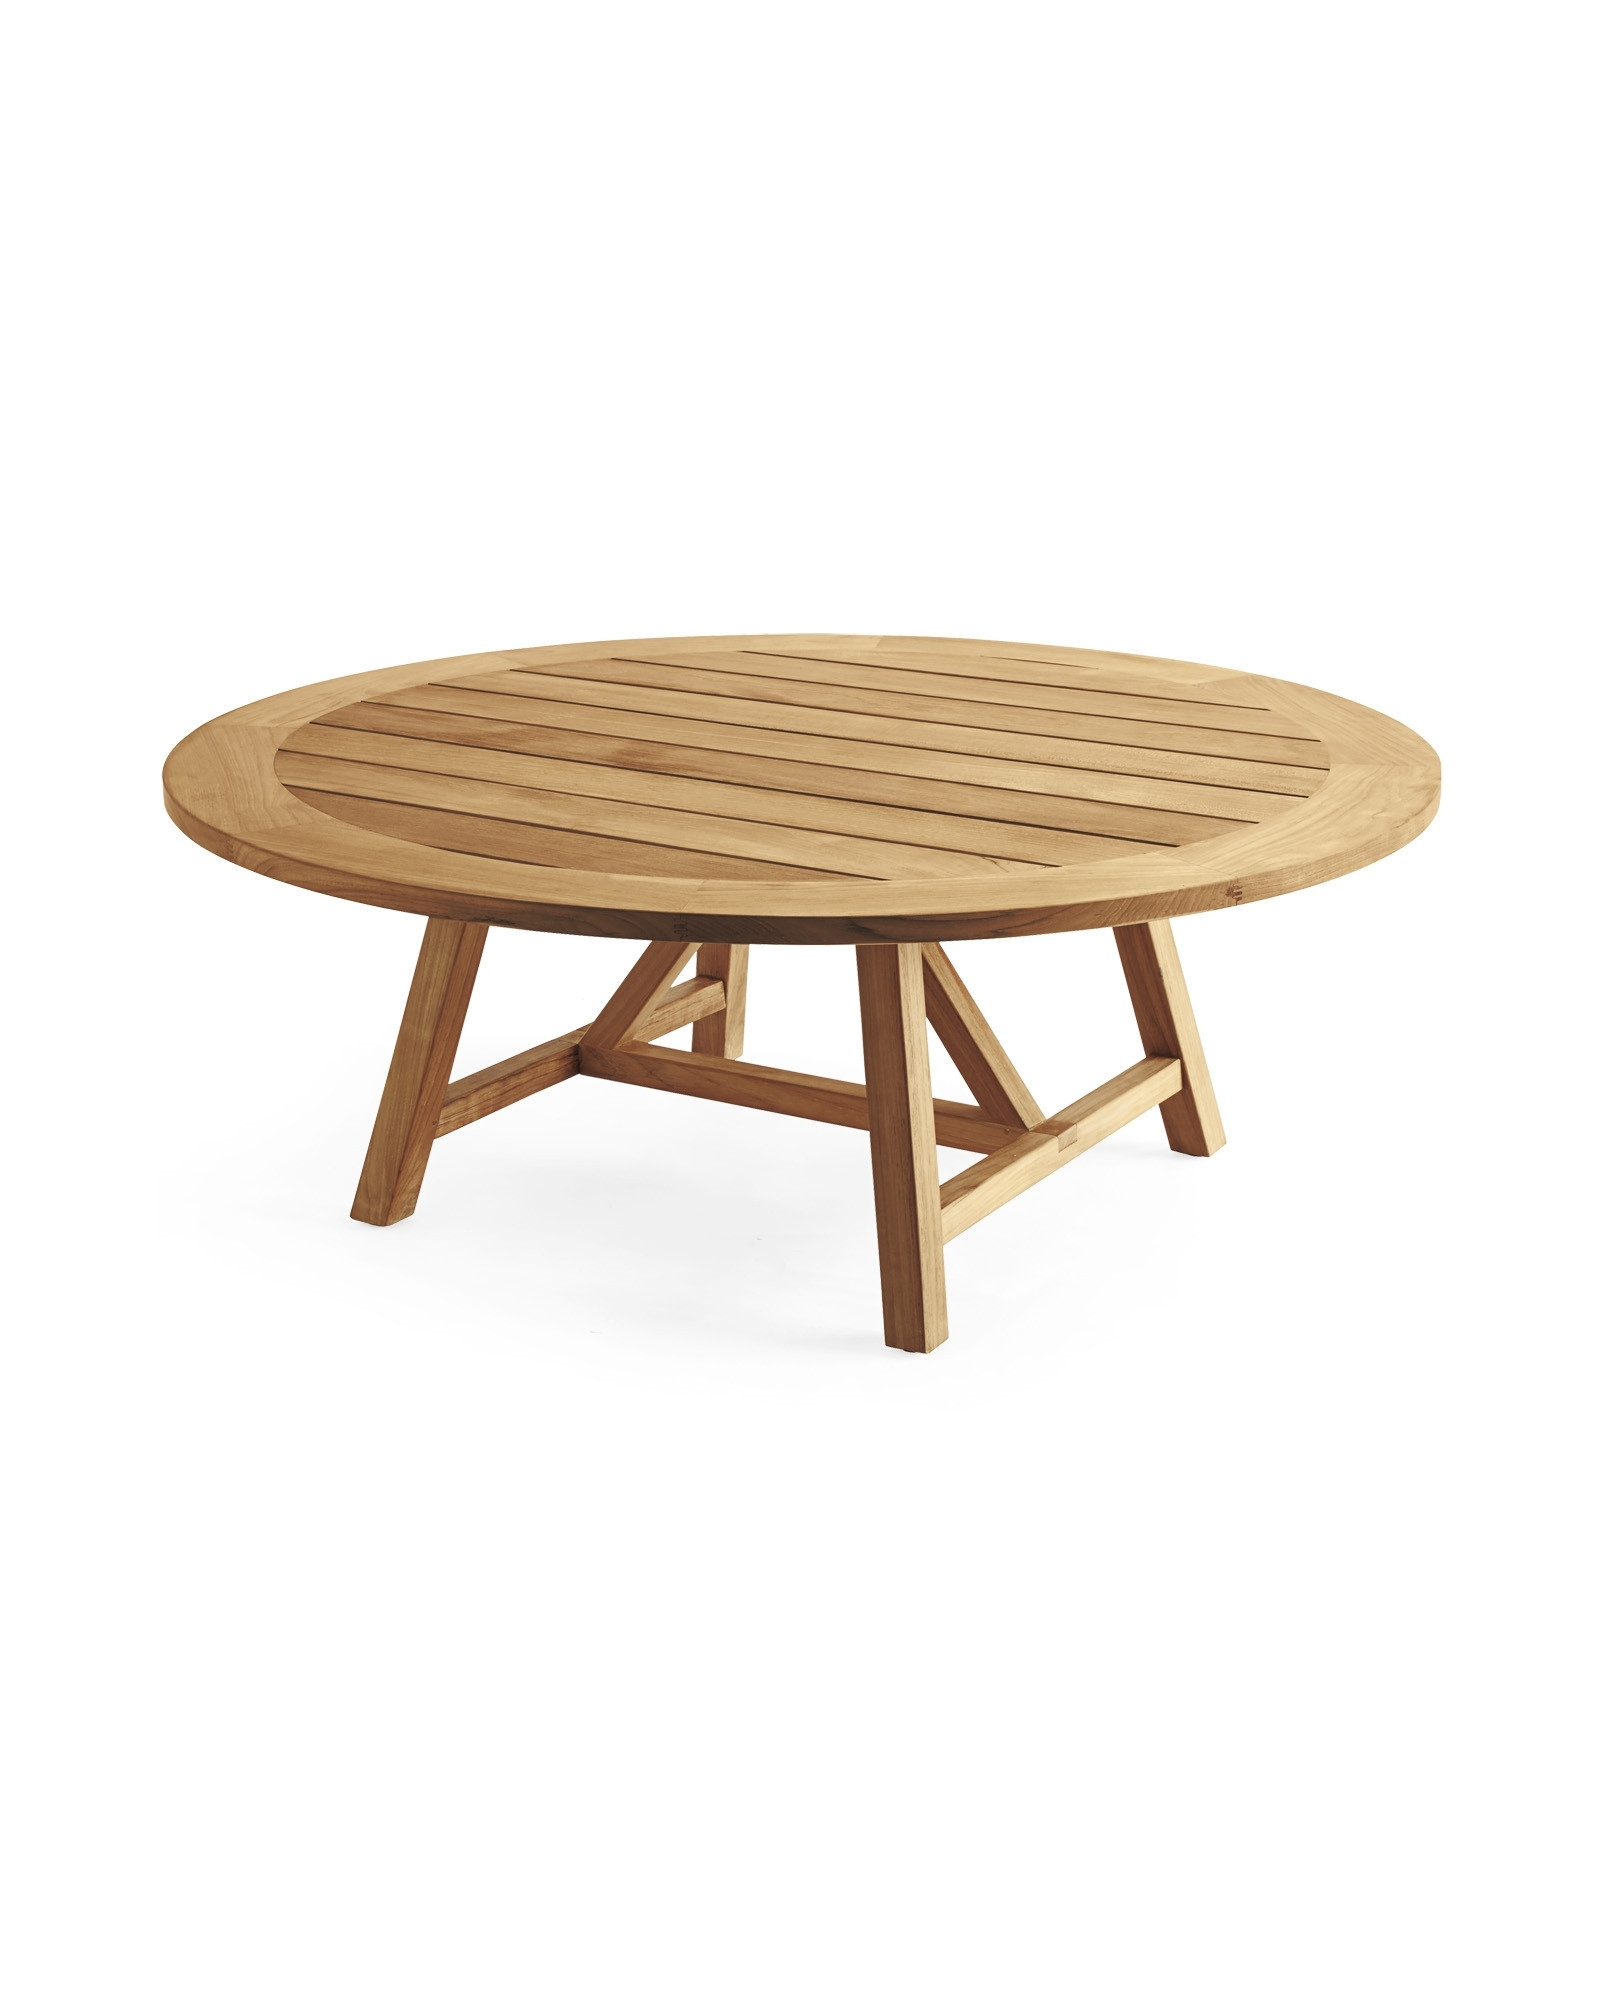 Teak Coffee Table Outdoor Fresh Round Teak Coffee Table Regarding 2017 Round Teak Coffee Tables (View 8 of 20)